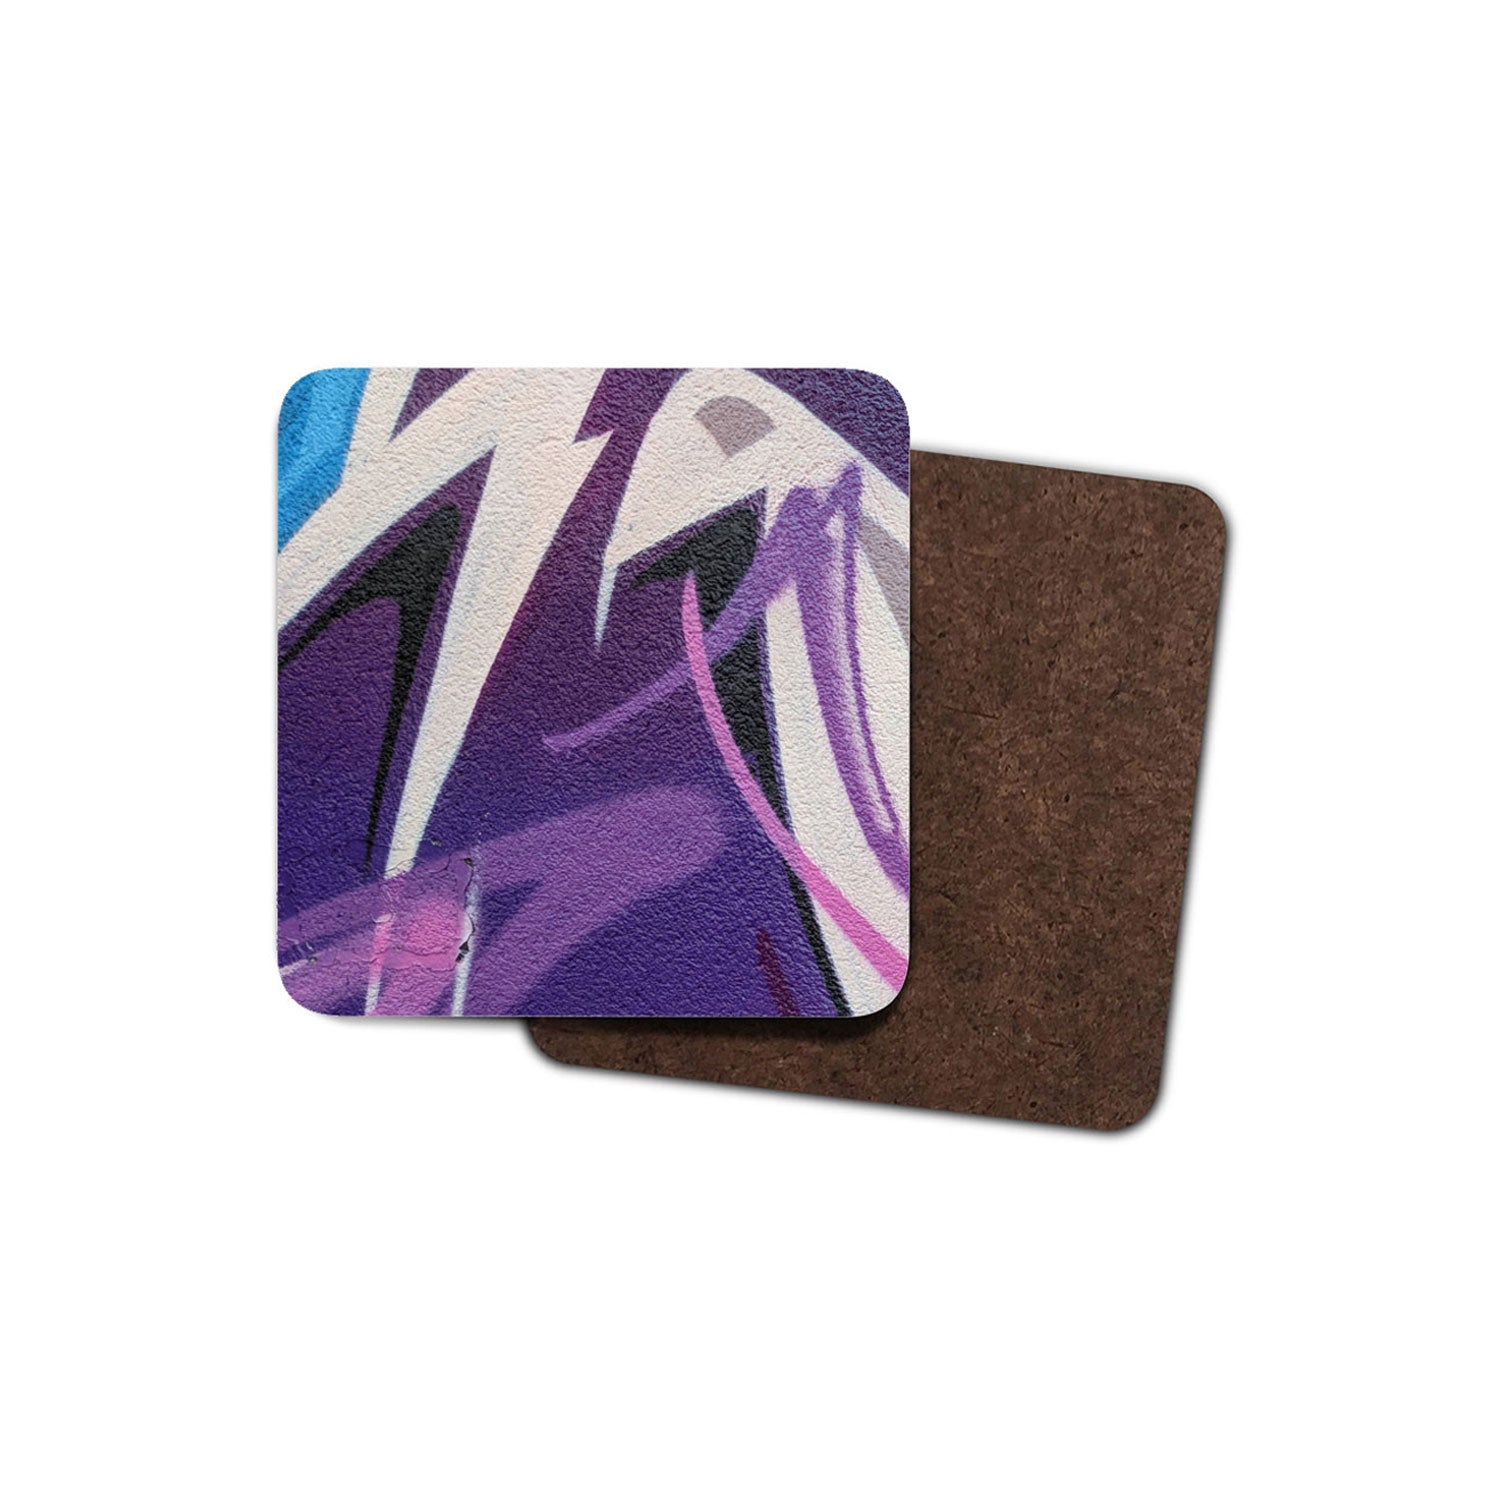 blue and purple graffiti print coaster